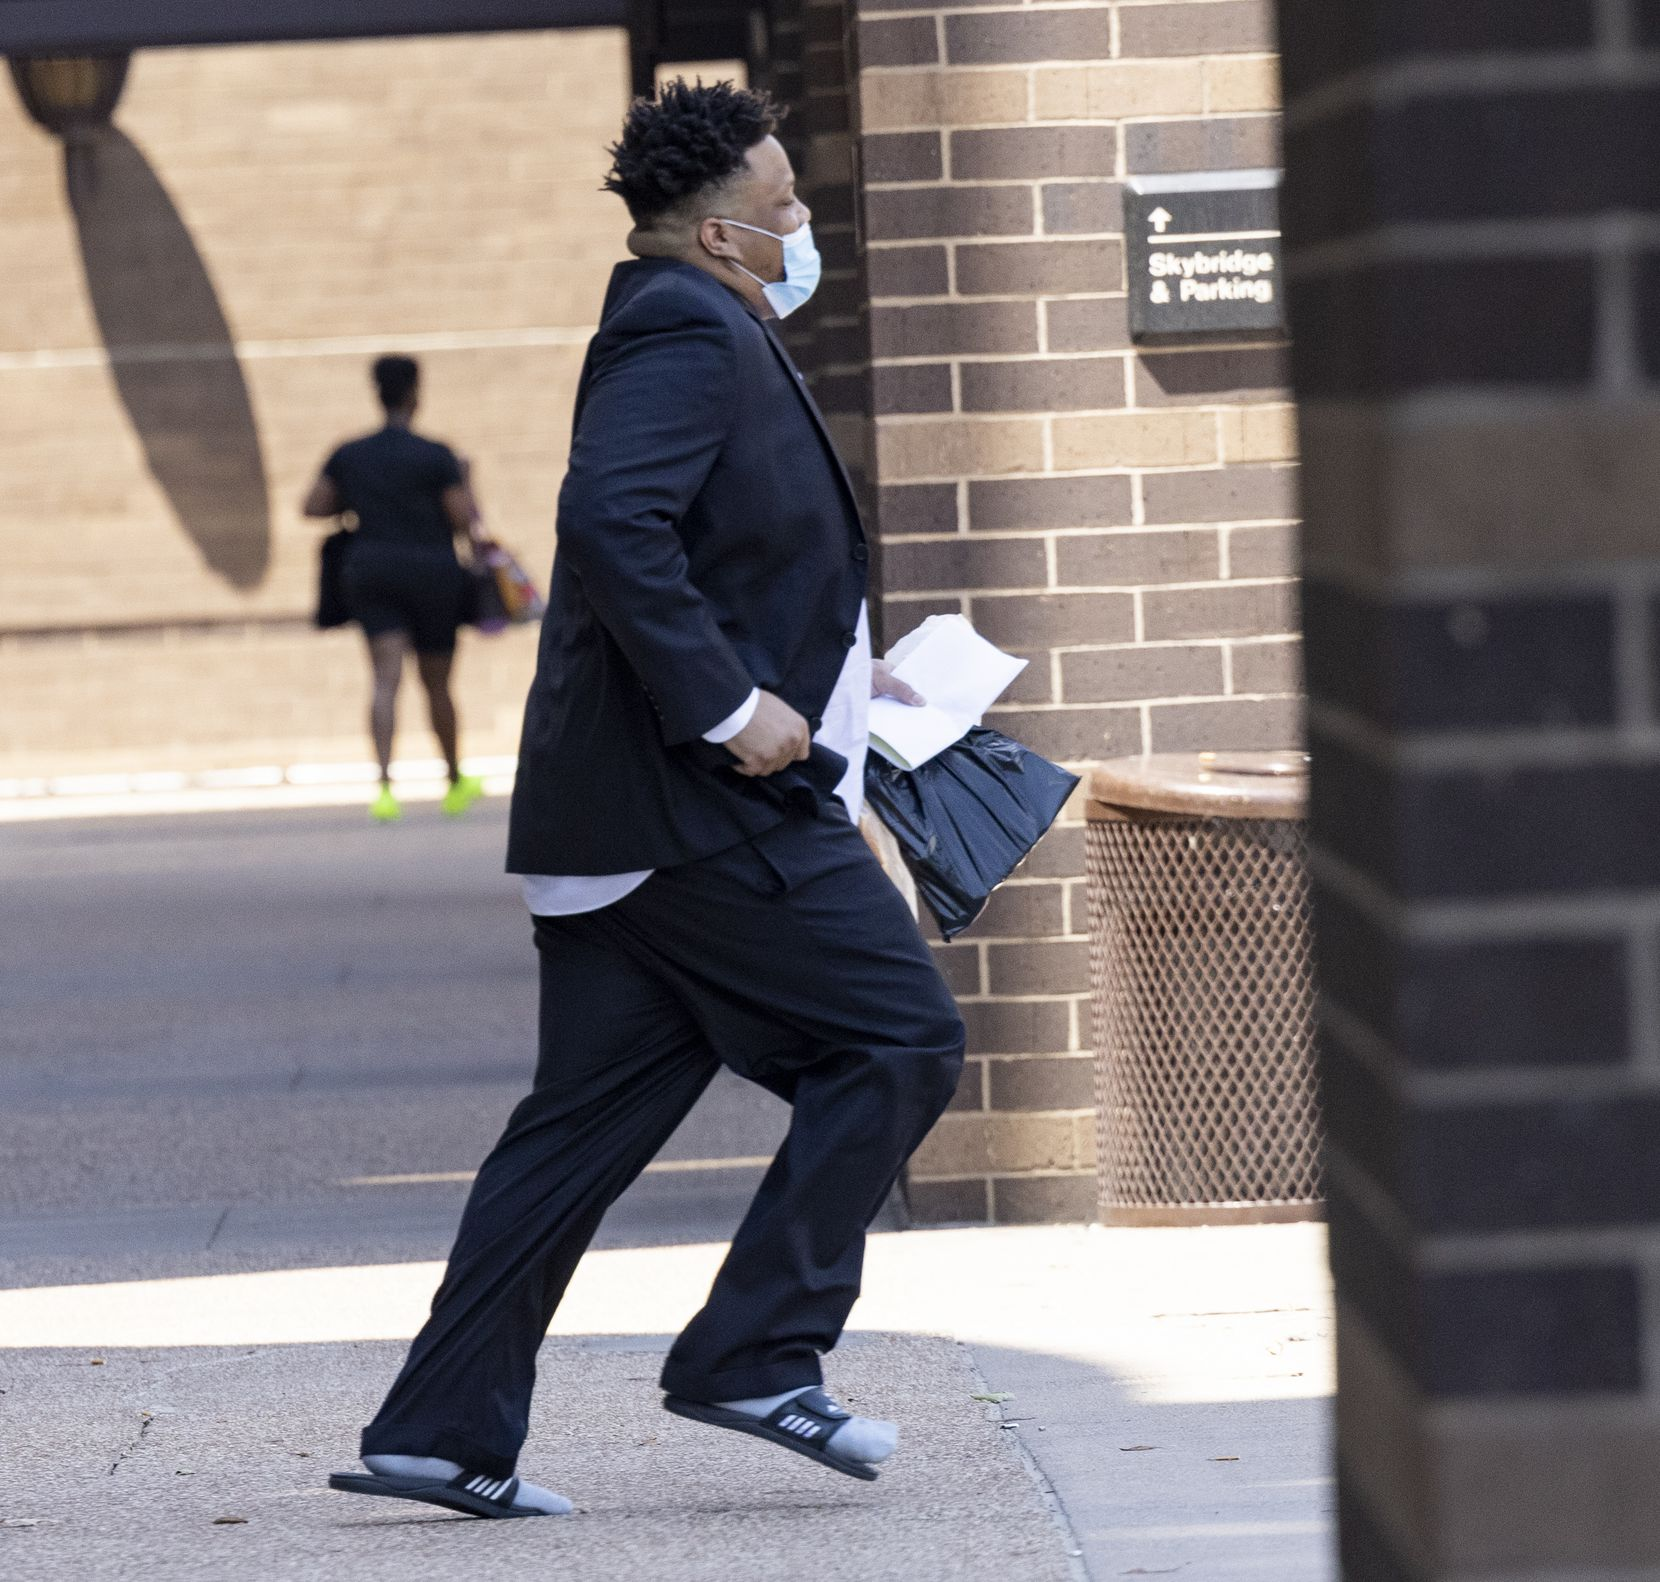 Jonathan Pitts leaves after visiting the pre-trial services office on Monday, Aug. 16, 2021, at the Frank Crowley Courts Building in Dallas. Pitts, a murder suspect scheduled to go on trial this week, was released from Dallas County jail after it was revealed that the city may have lost evidence in his case. (Juan Figueroa/The Dallas Morning News)